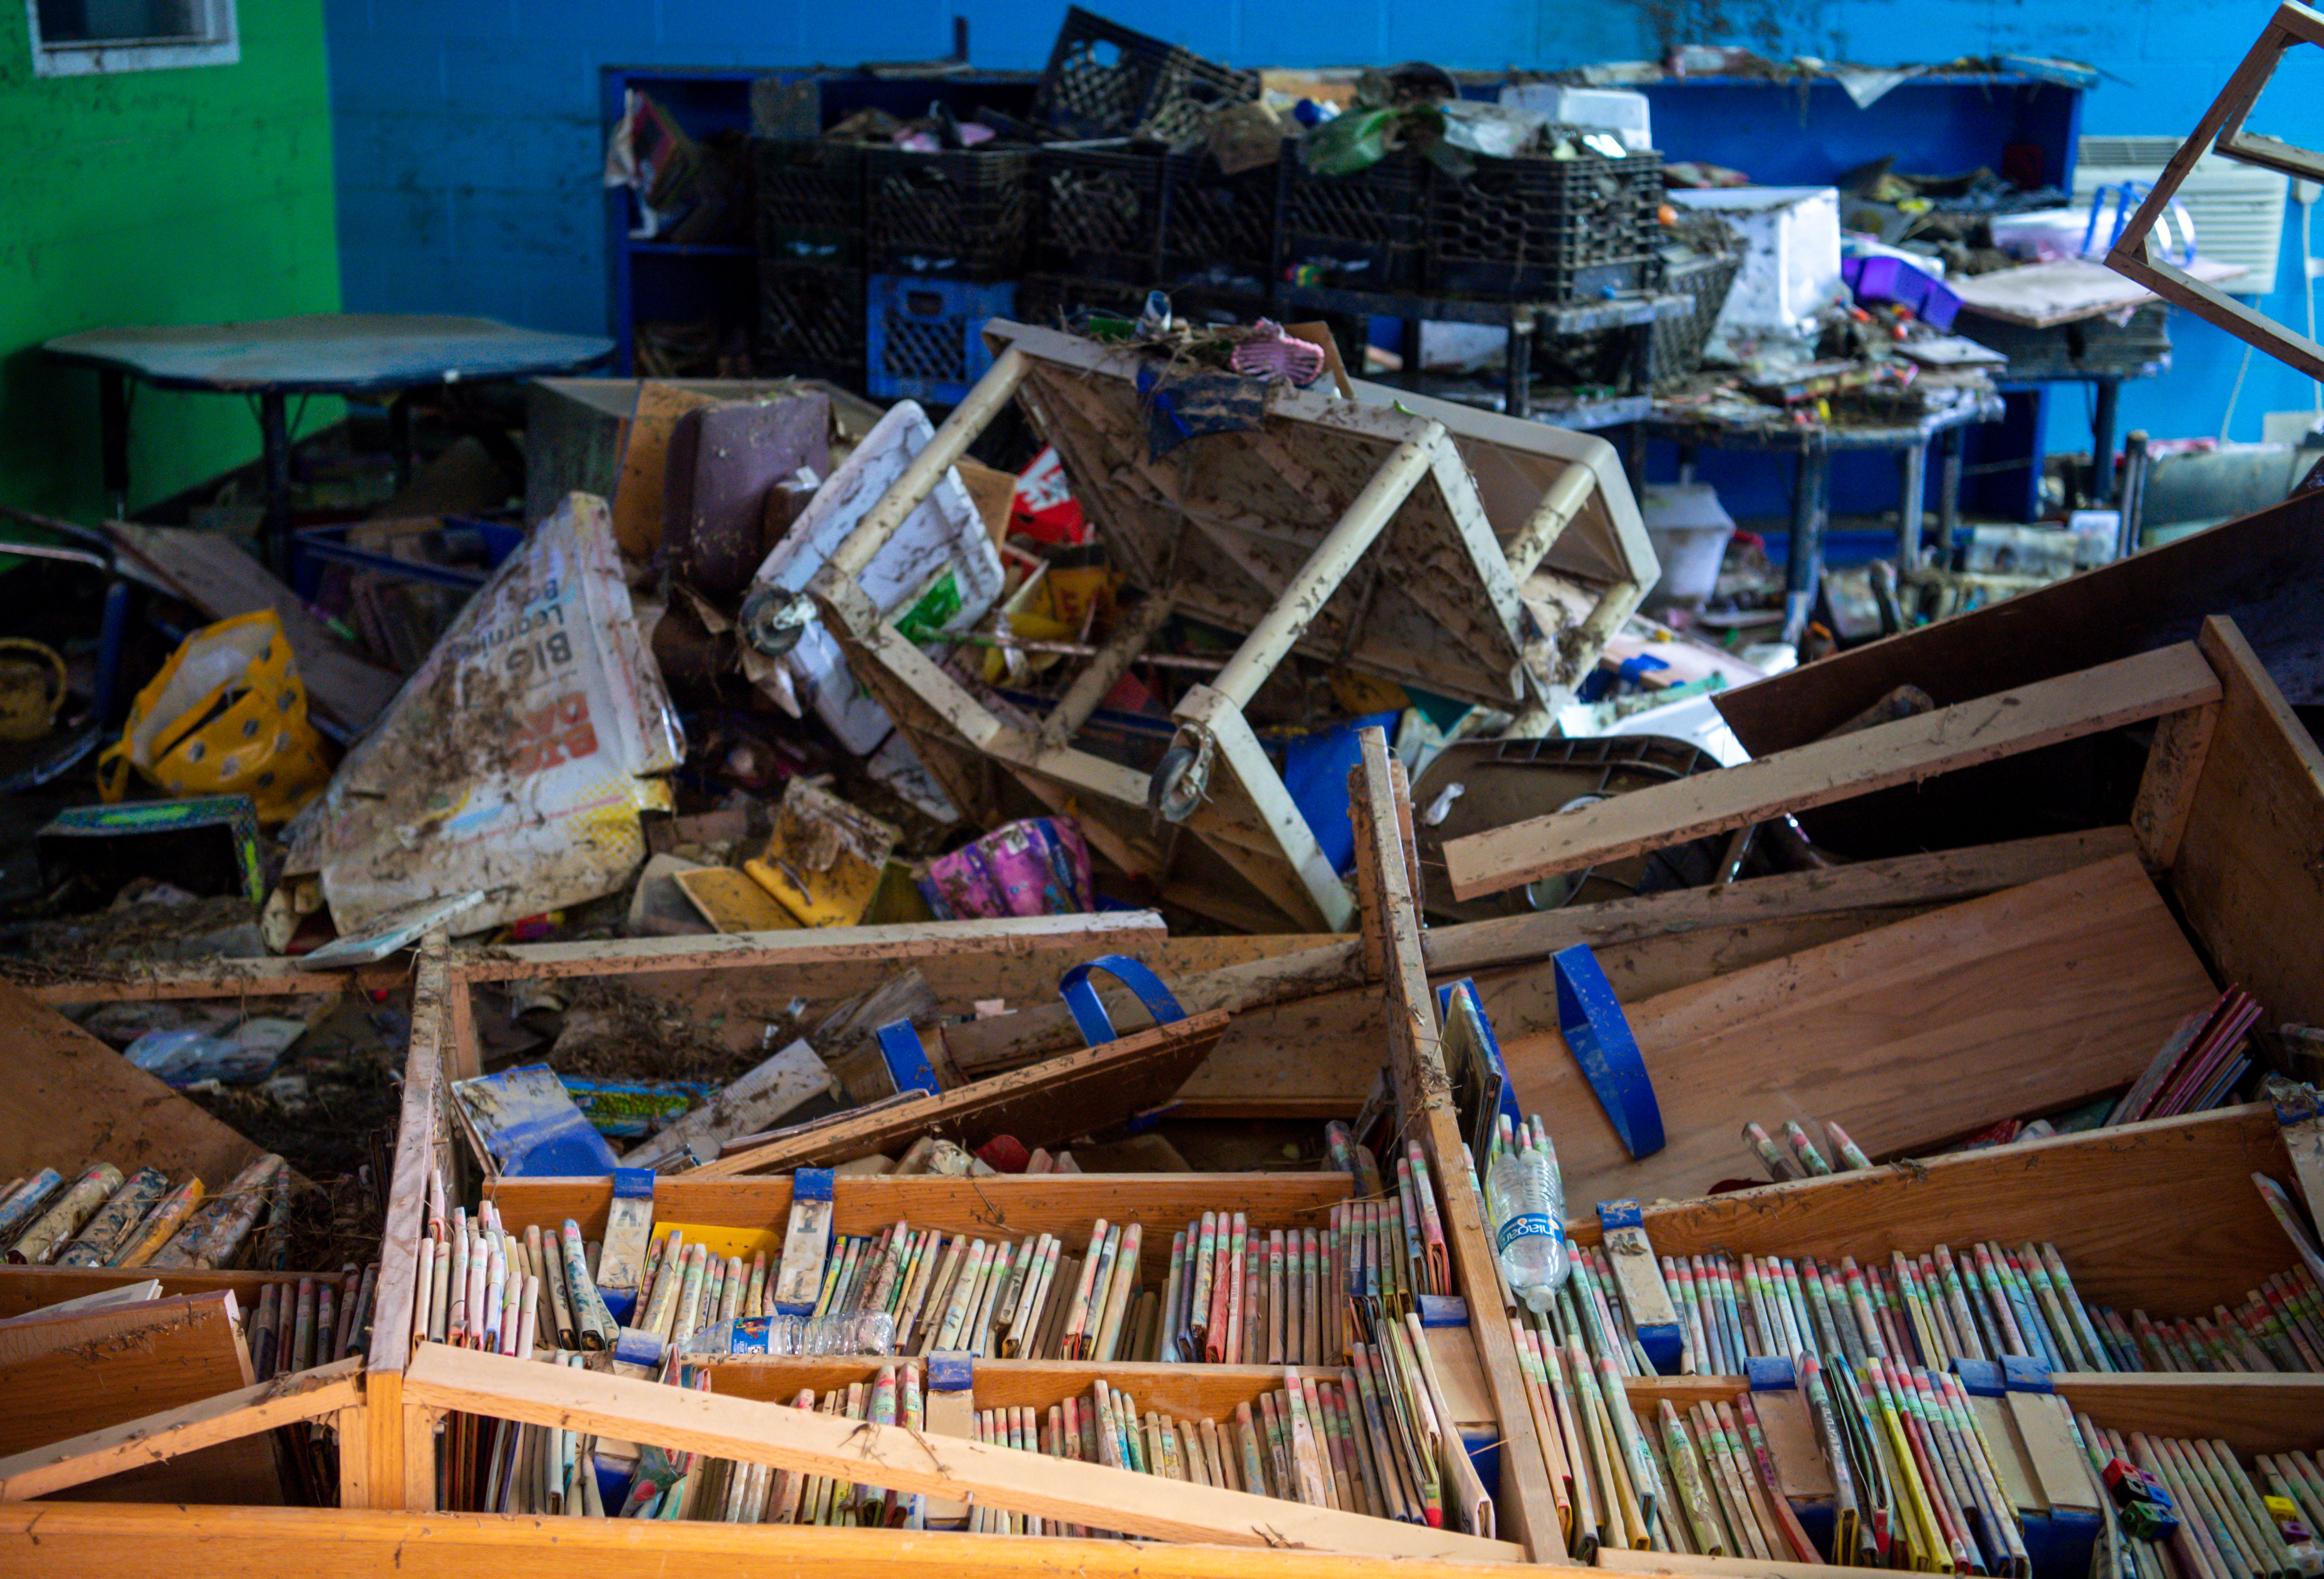 Bookcases are seen toppled over in the flooded Waverly Elementary School library as seen on Wednesday, Aug. 25, 2021, after flash flooding swept through the town of Waverly, Tenn.